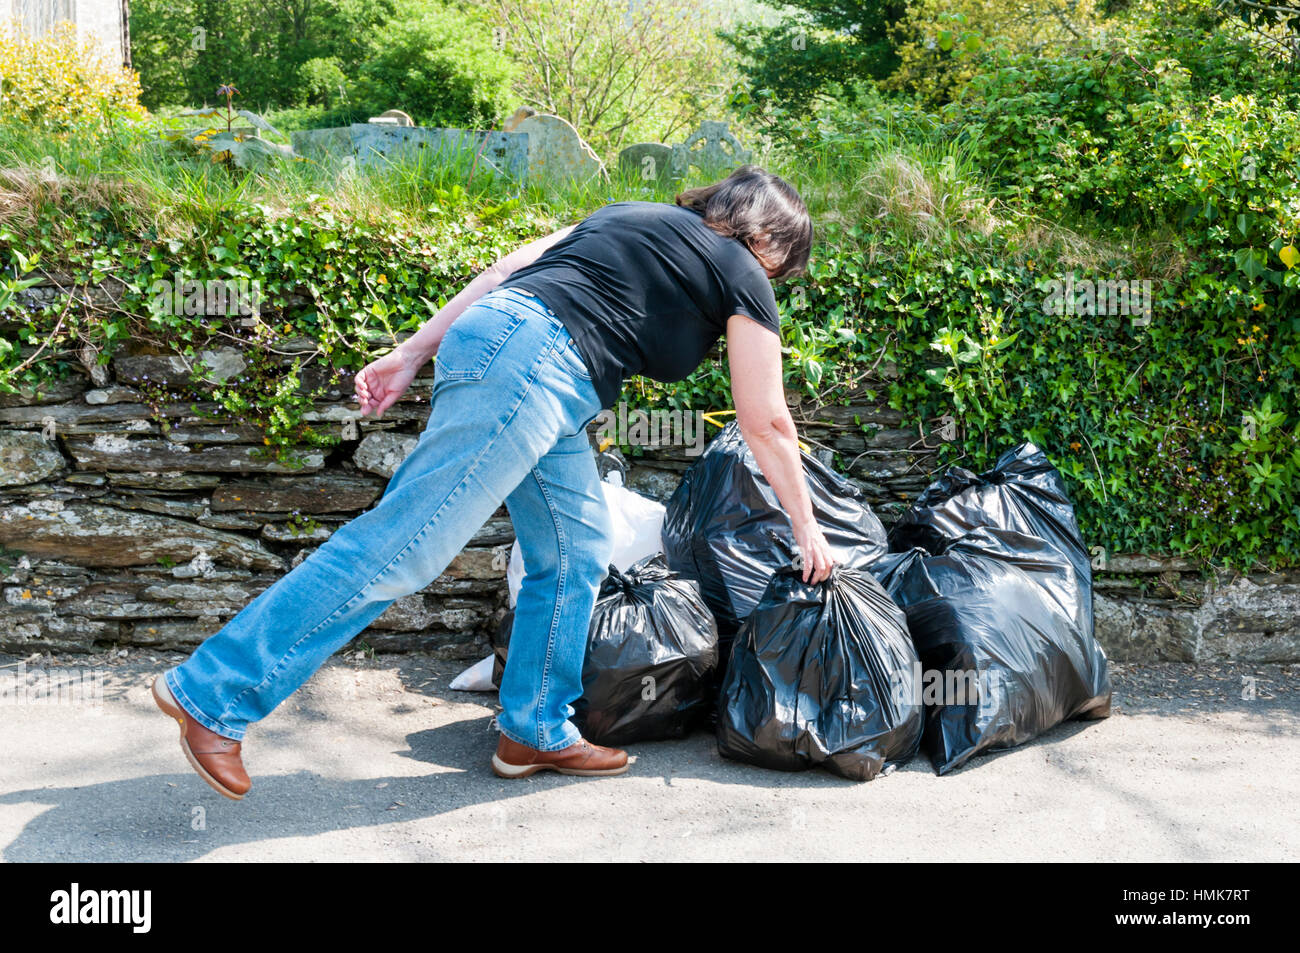 Putting out rubbish in black sacks for collection. In rural Cornwall. - Stock Image